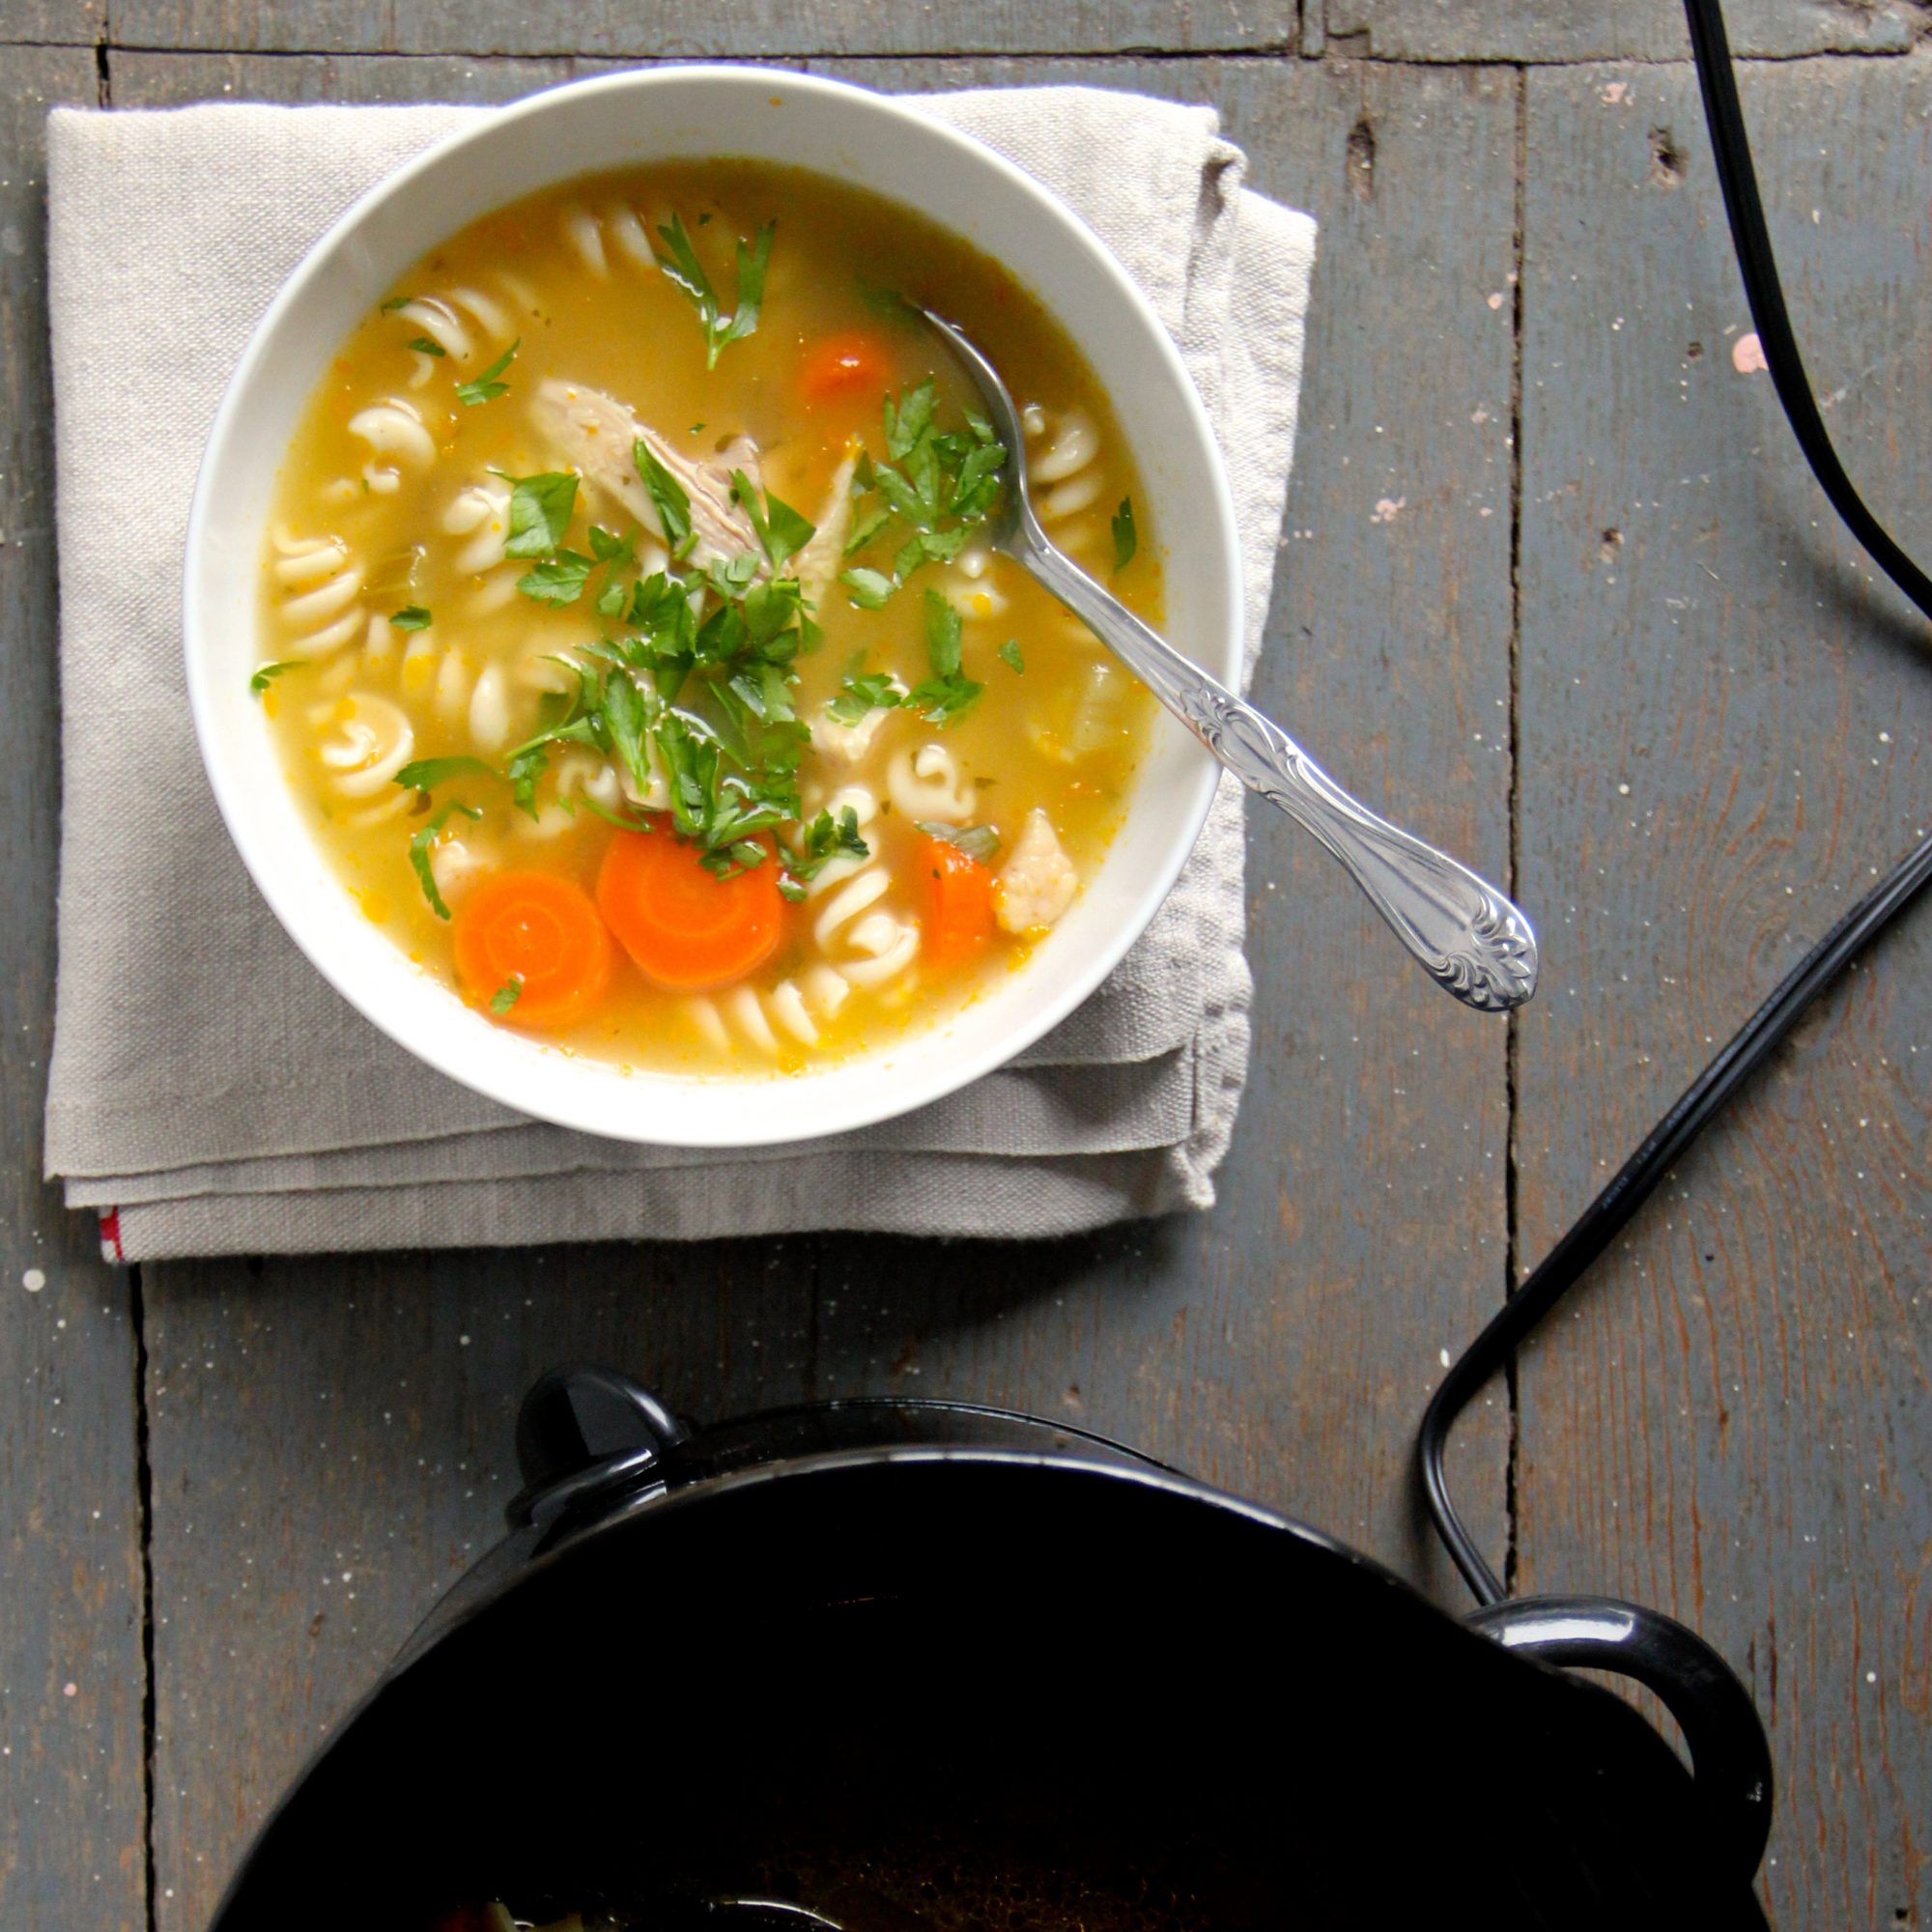 Slow Cooker Chicken Noodle Soup Recipe - Ian Knauer